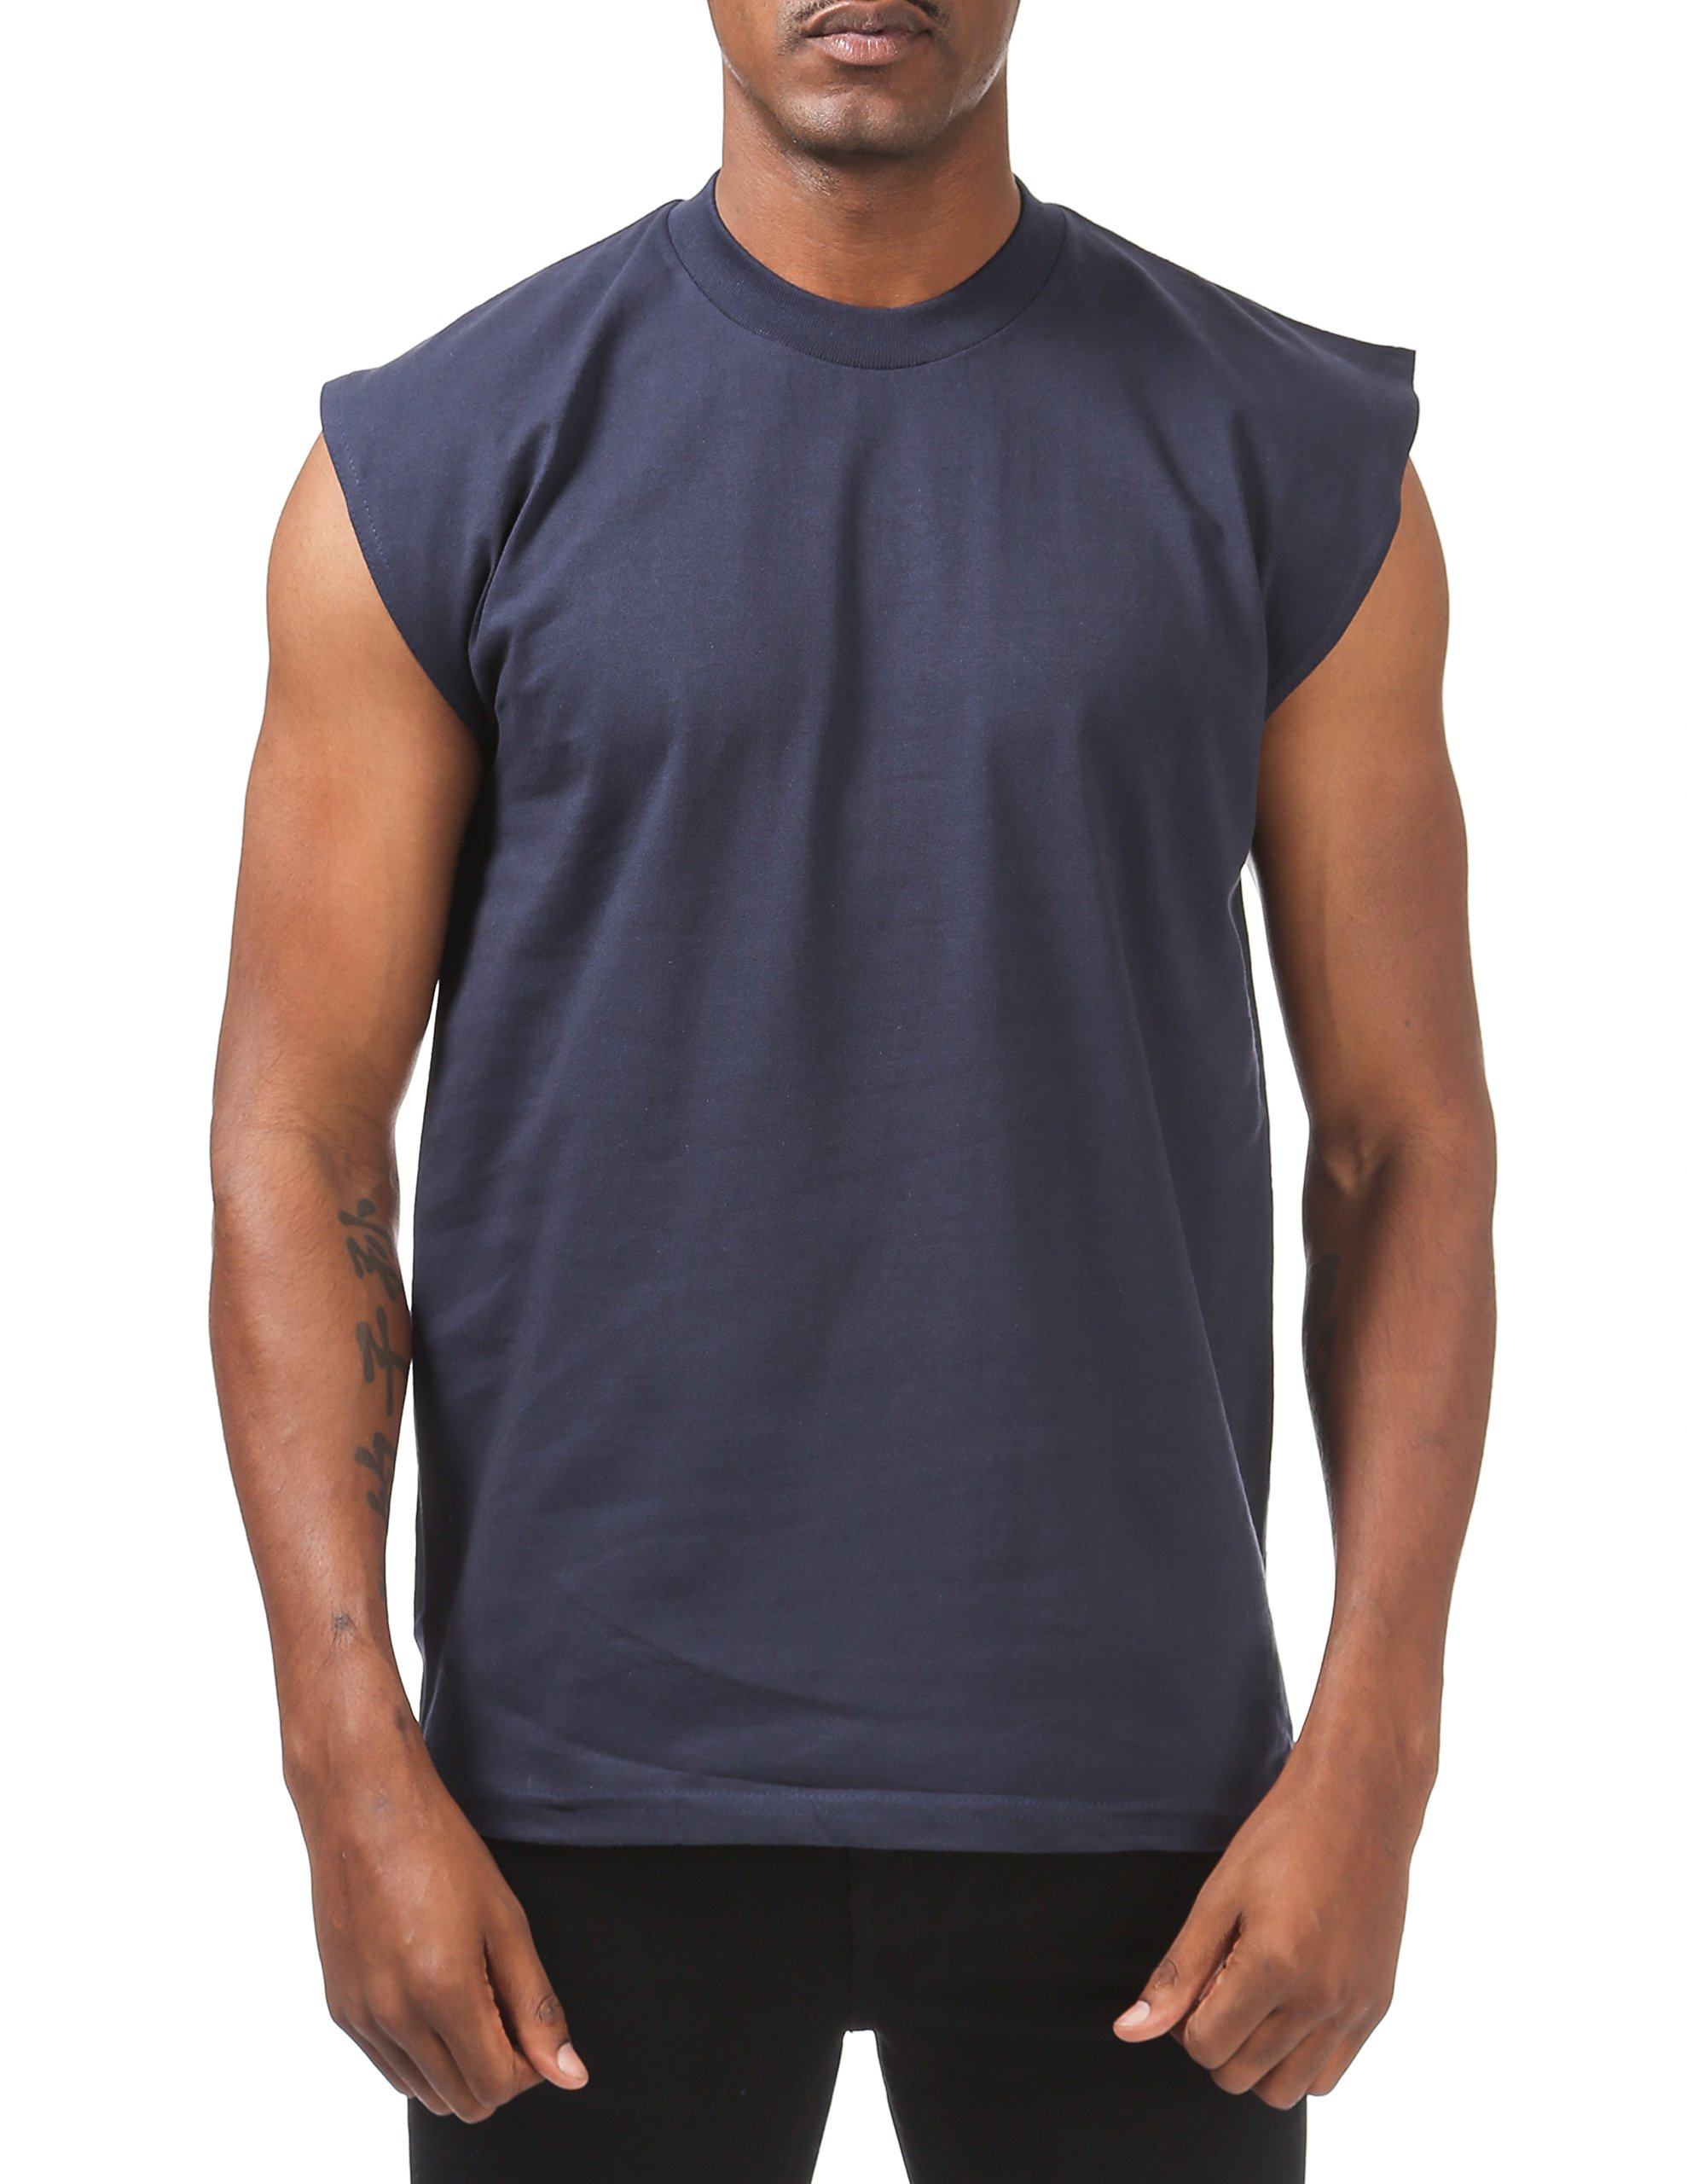 Pro Club Men's Heavyweight Sleeveless Muscle T-Shirt, Navy, 7X-Large by Pro Club